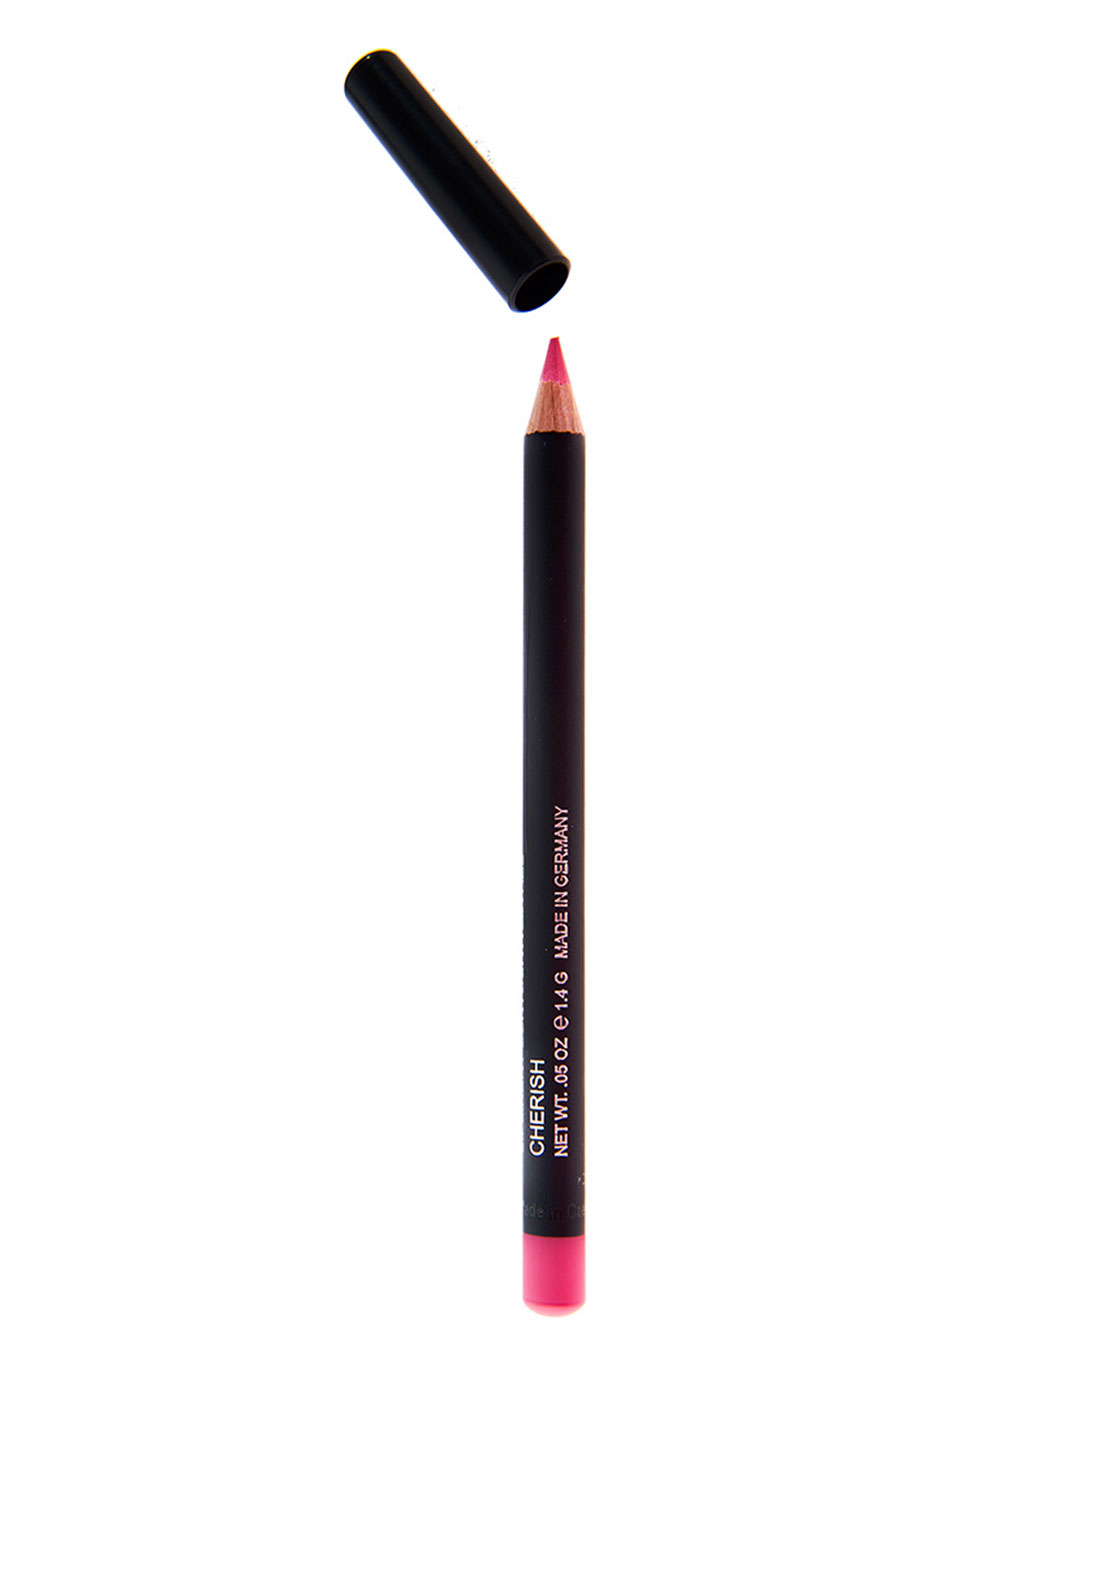 Lynda Strain Love Lynda Lip Pencil, Cherish